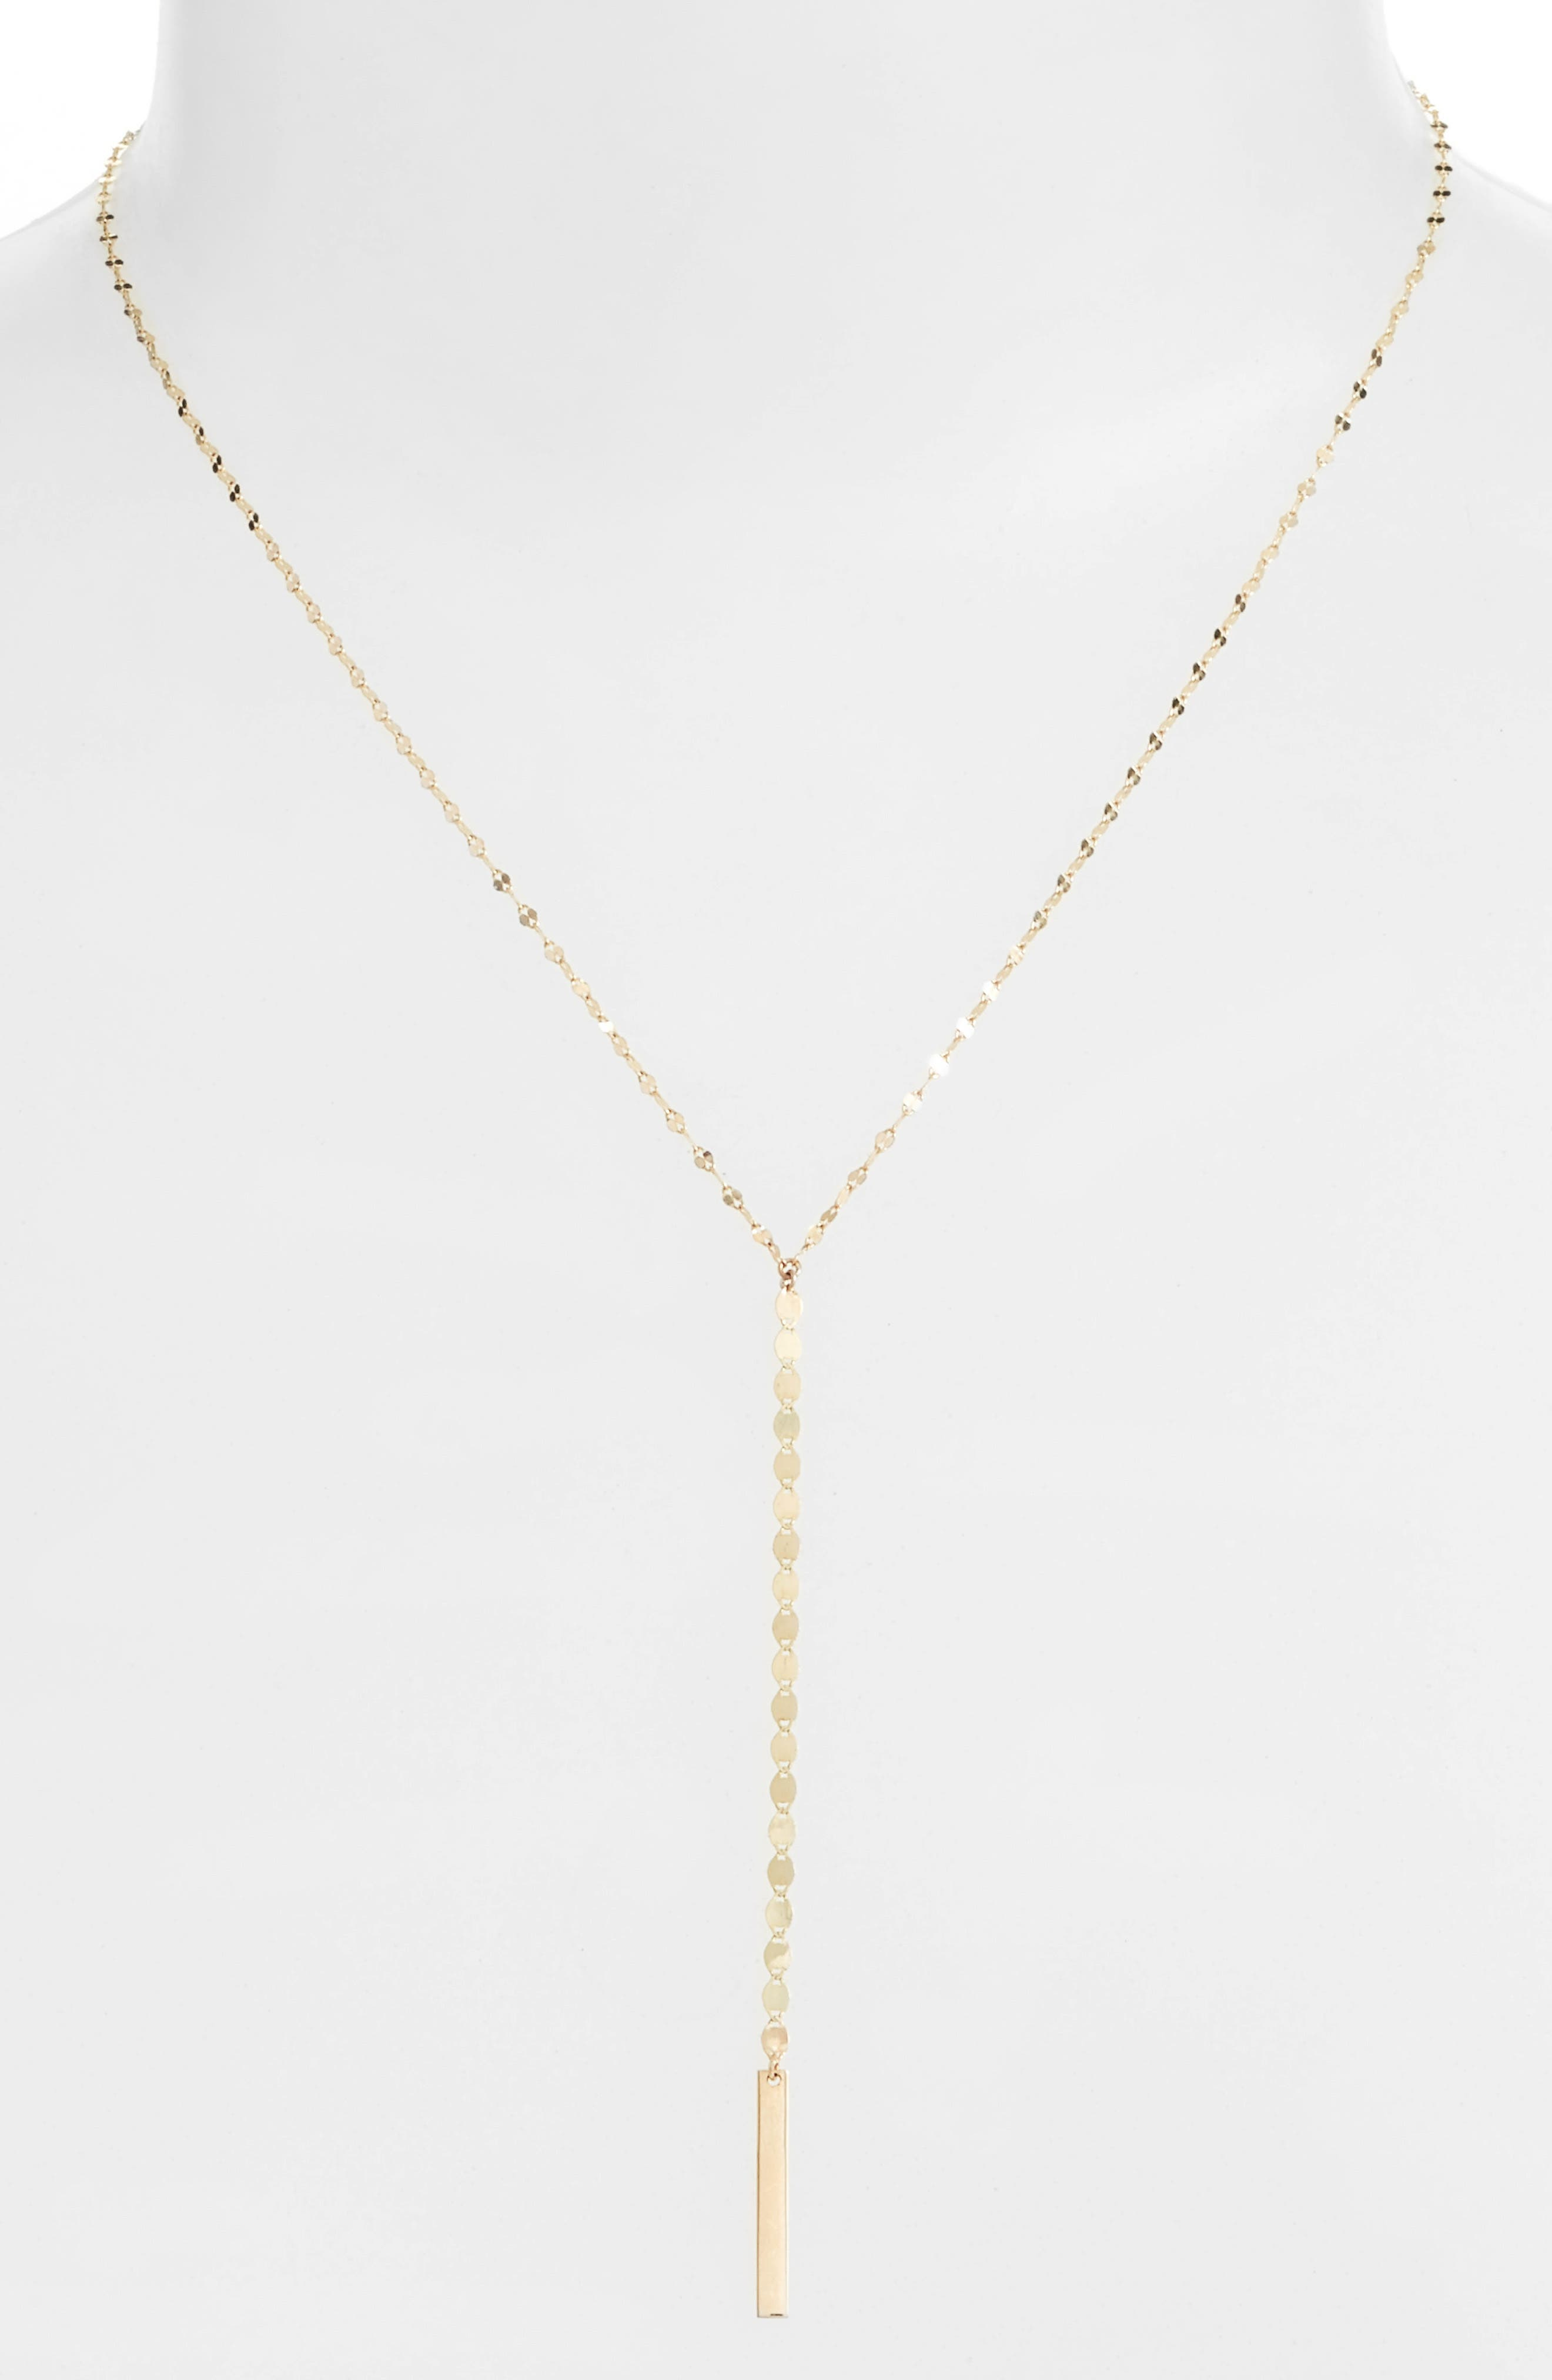 Nude Remix Bar Y-Necklace,                             Alternate thumbnail 2, color,                             YELLOW GOLD